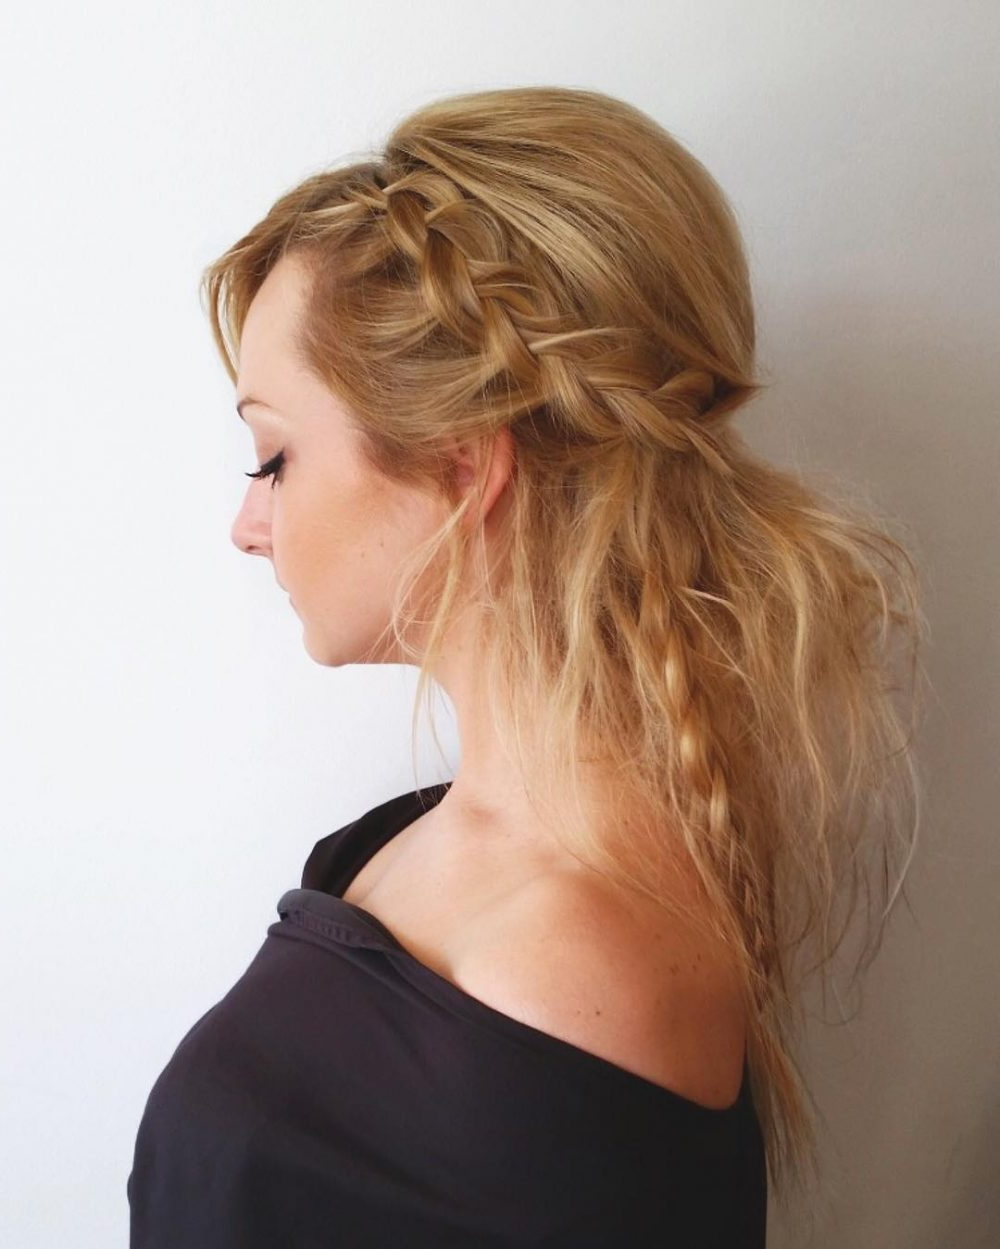 Top 19 Bohemian Hairstyles Trending In 2019 With Regard To Popular Chic Bohemian Braid Hairstyles (View 16 of 20)